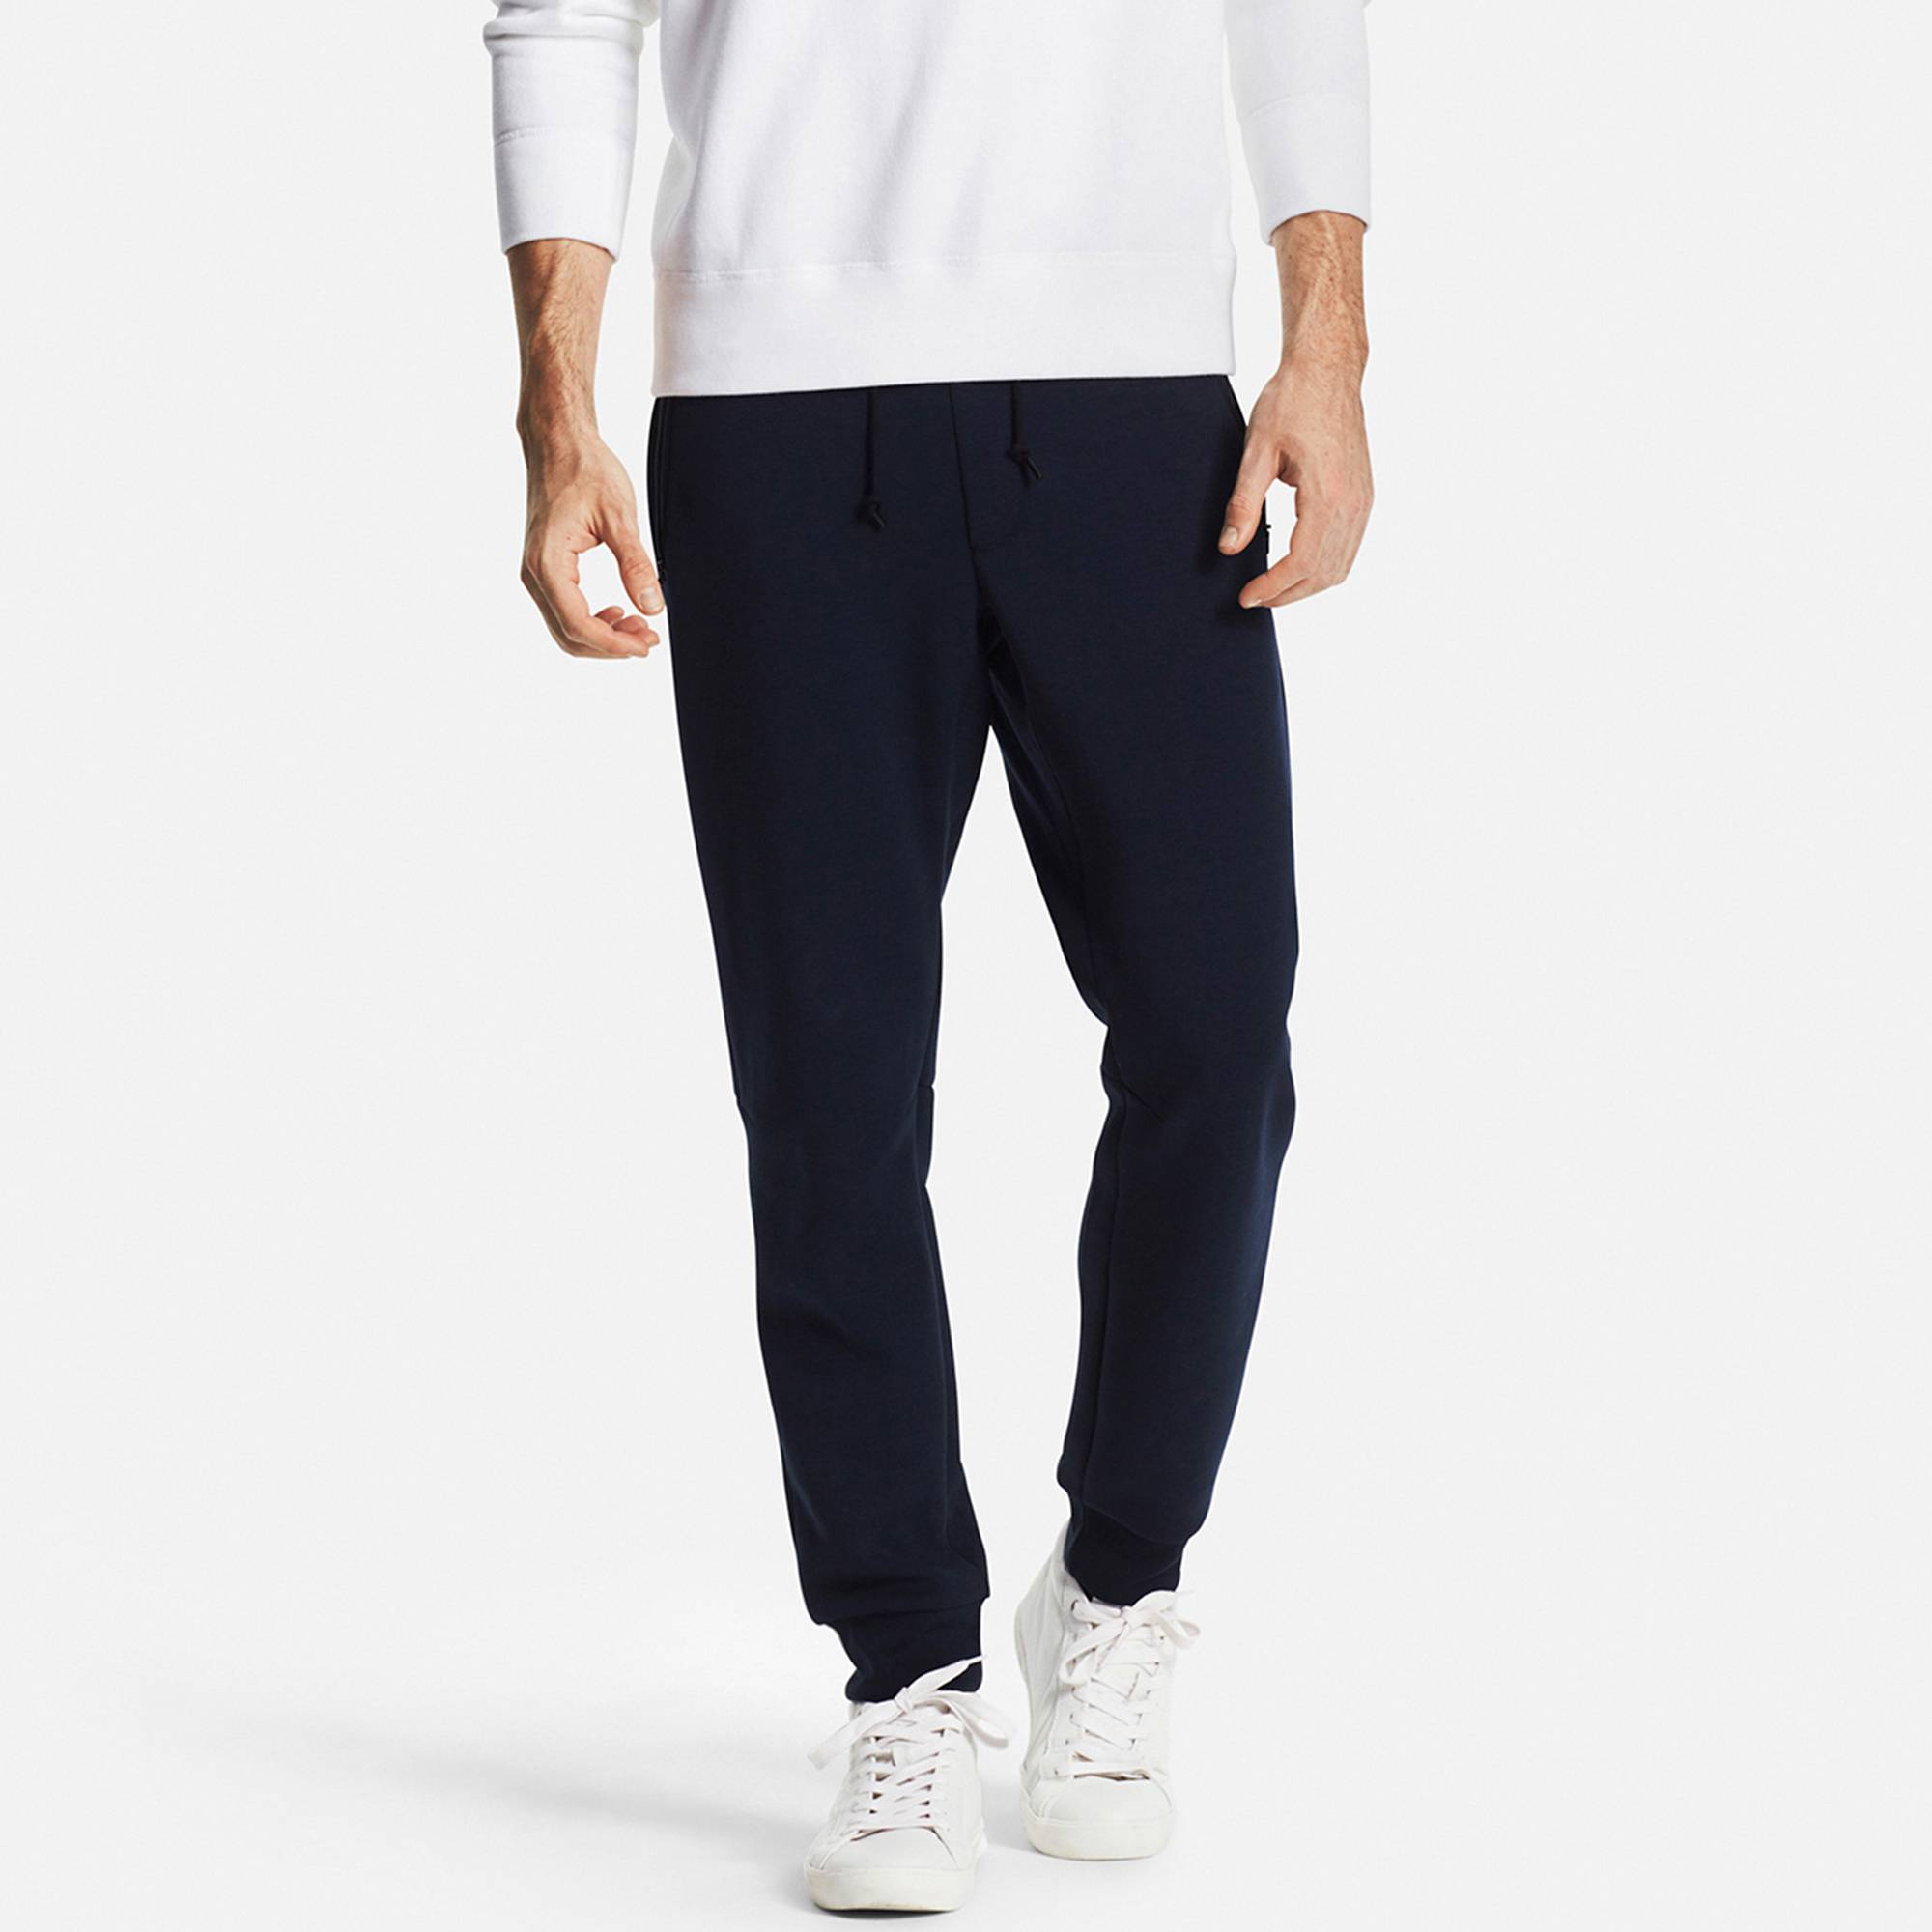 Men's DRY Stretch Sweatpants | UNIQLO US